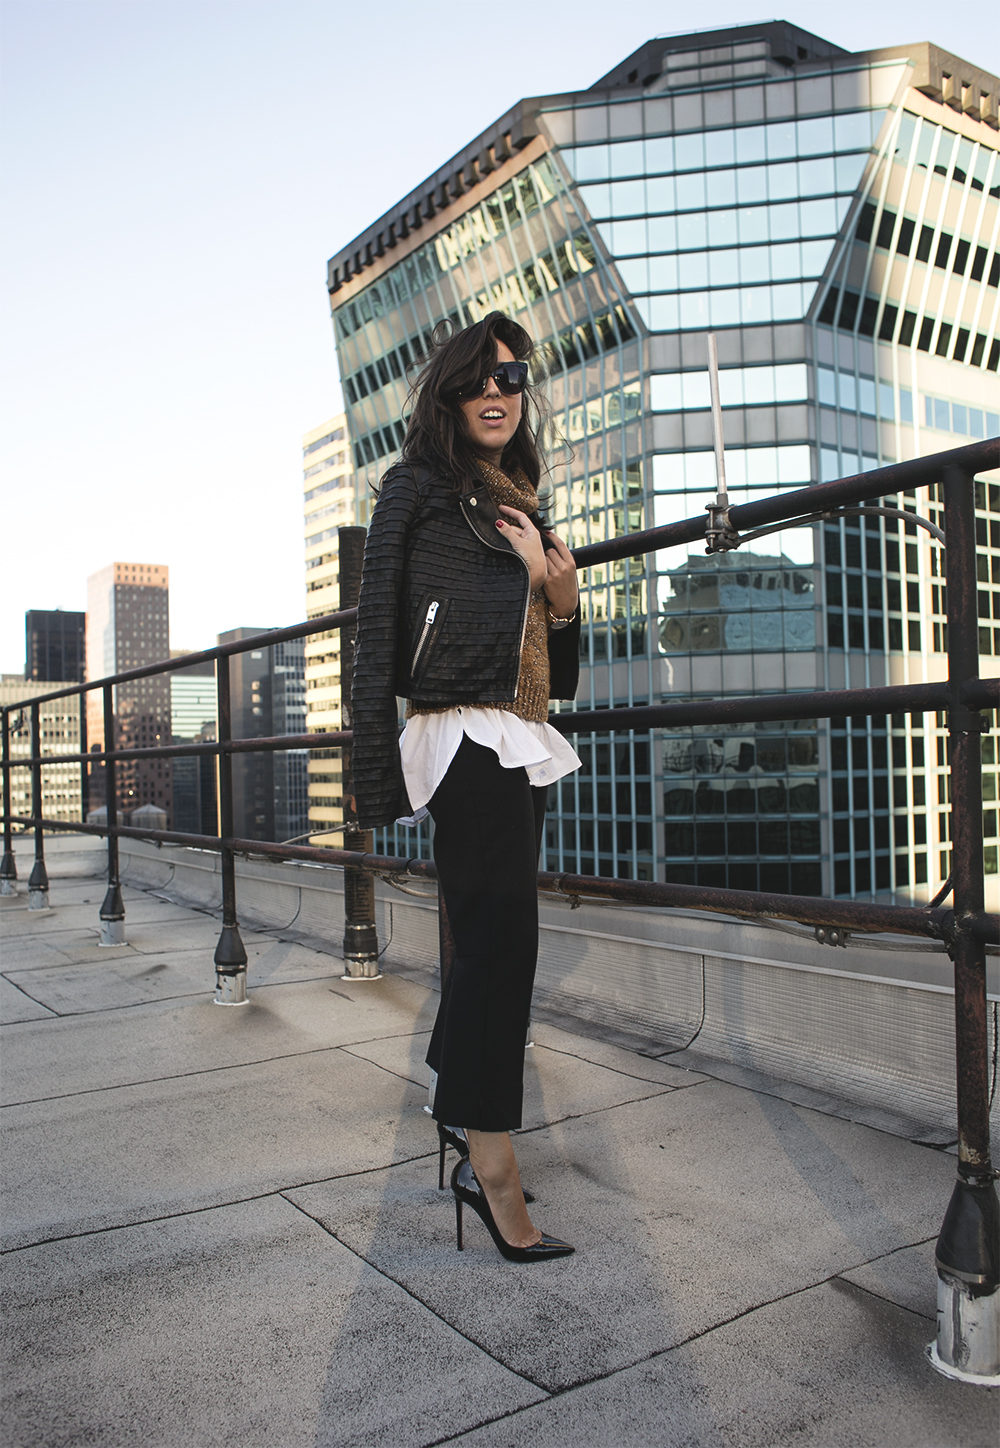 rooftop grand hyatt sania claus demina outfit diesel christian louboutin e and e sunglasses sahara monki gina tricot lindex trousers zanita whittington studio shoot_3